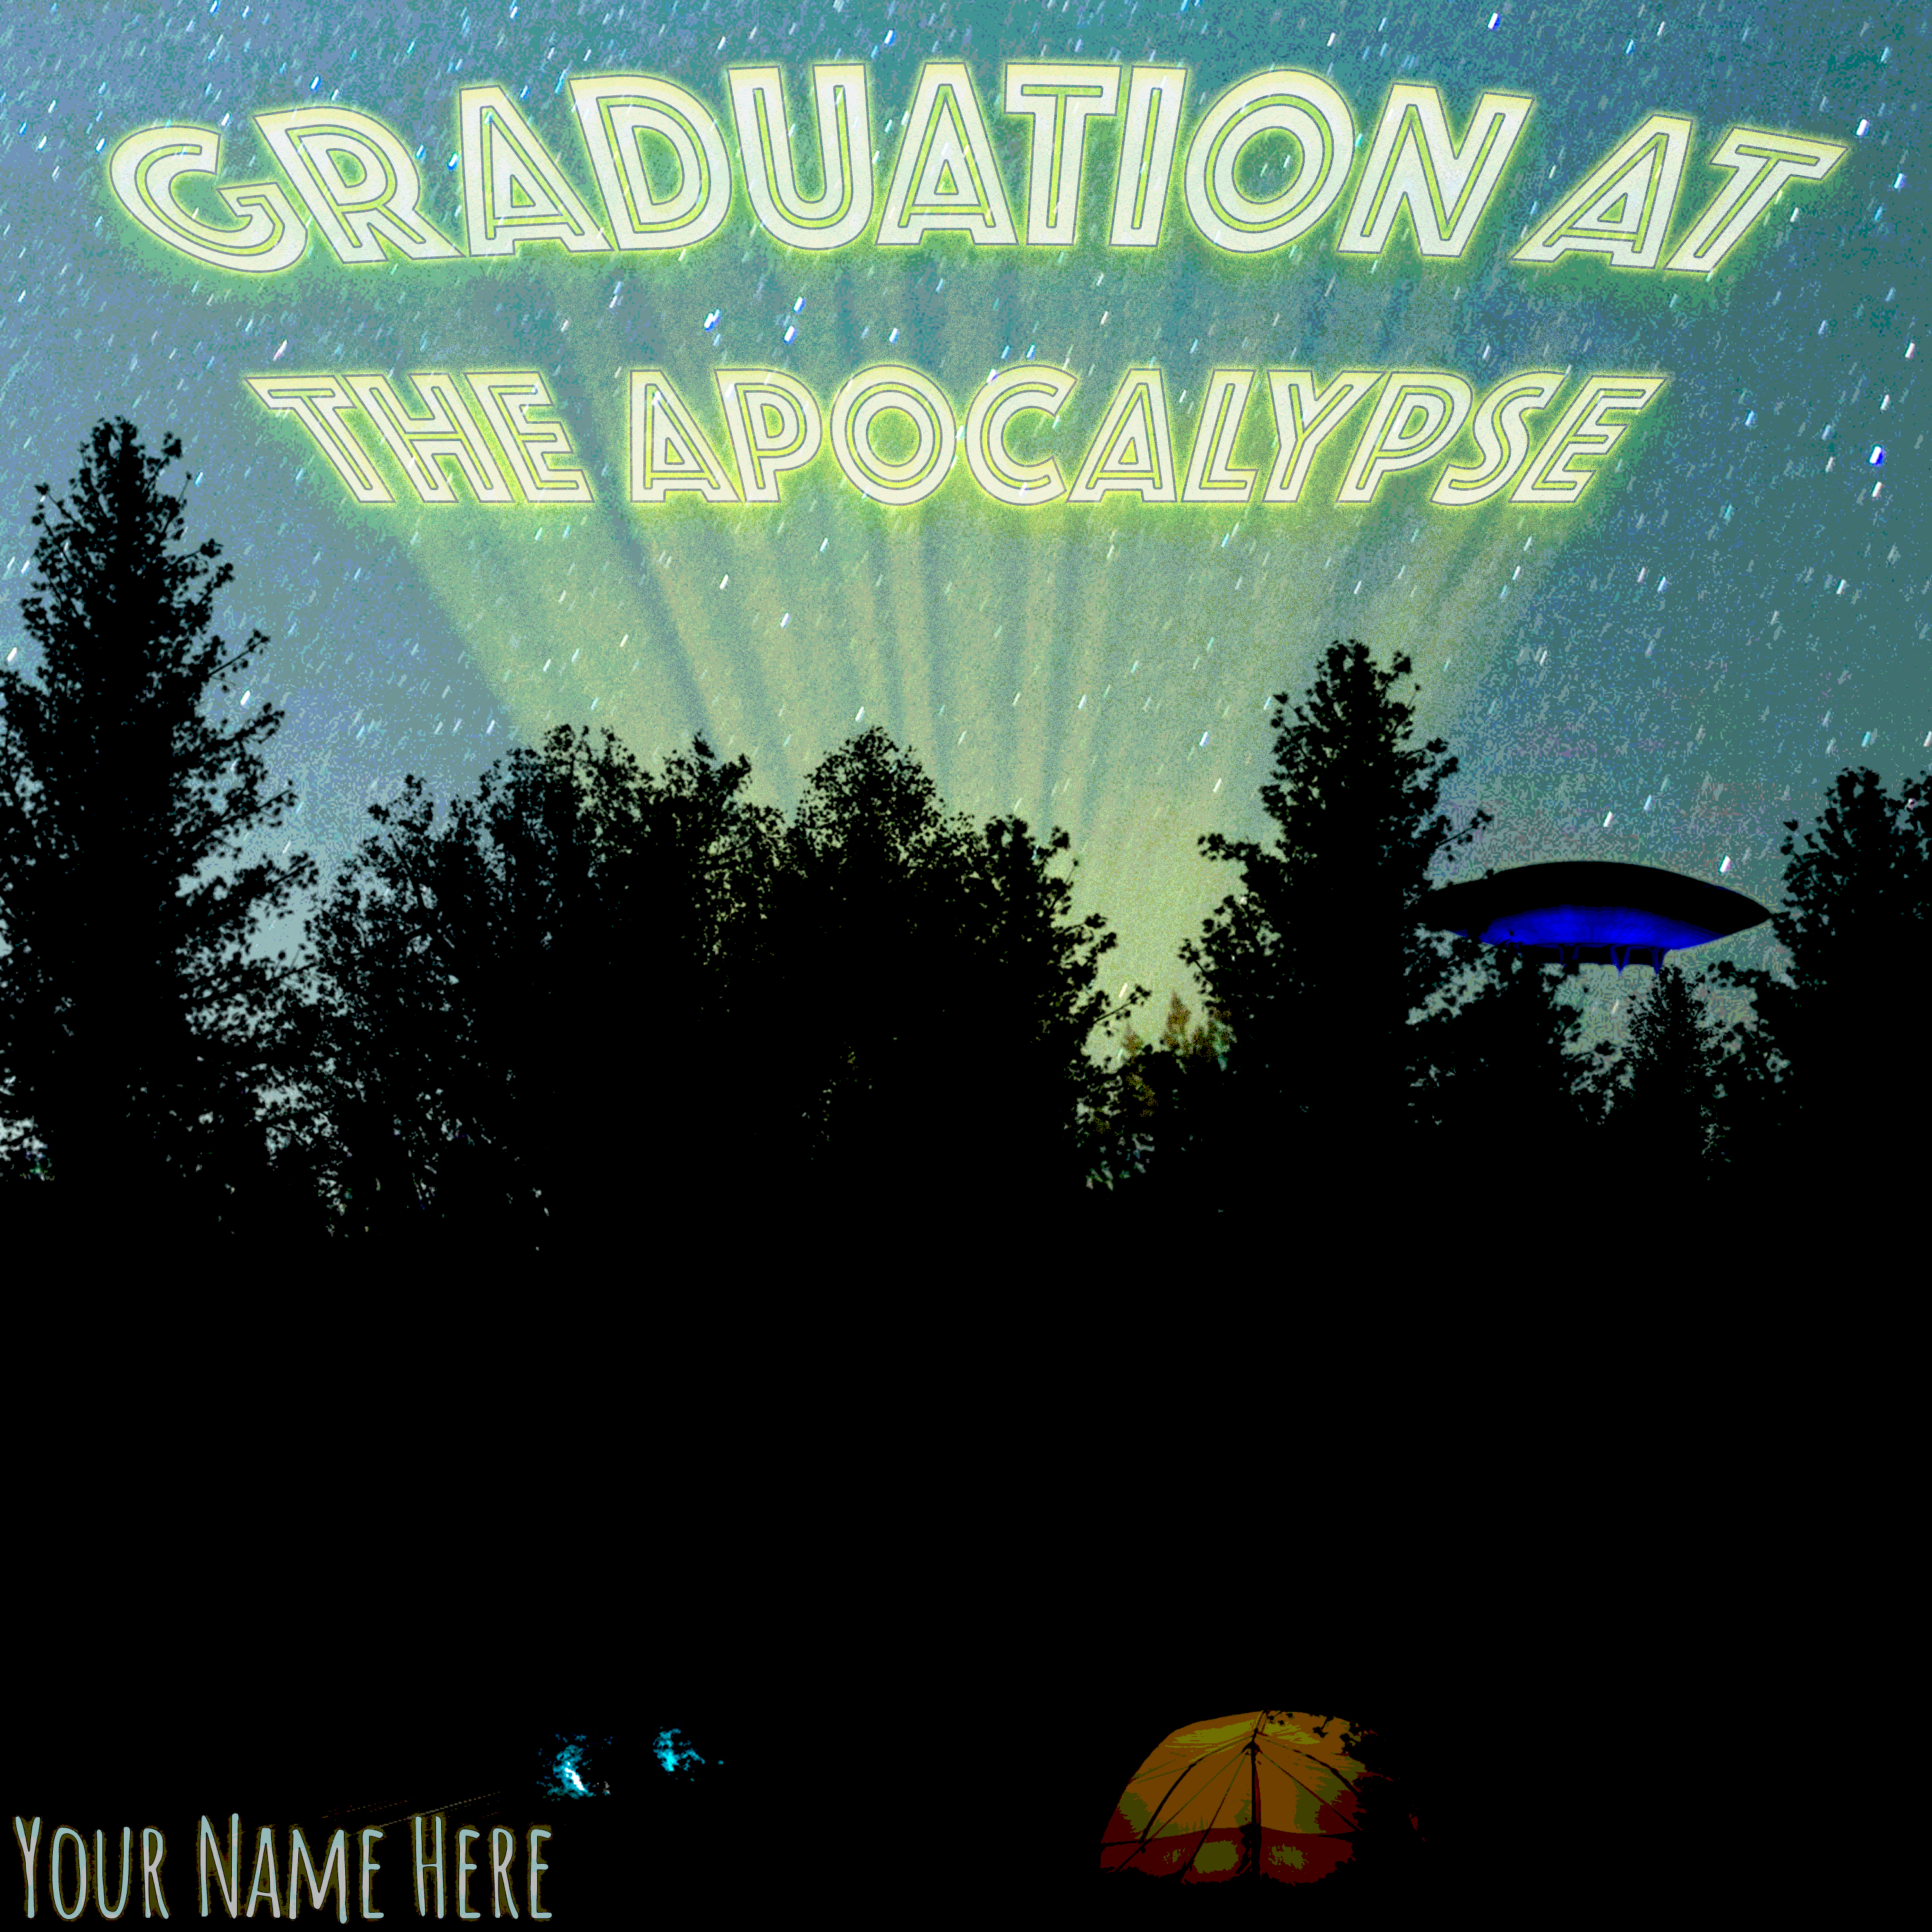 Graduation At The Apocalypse Cover